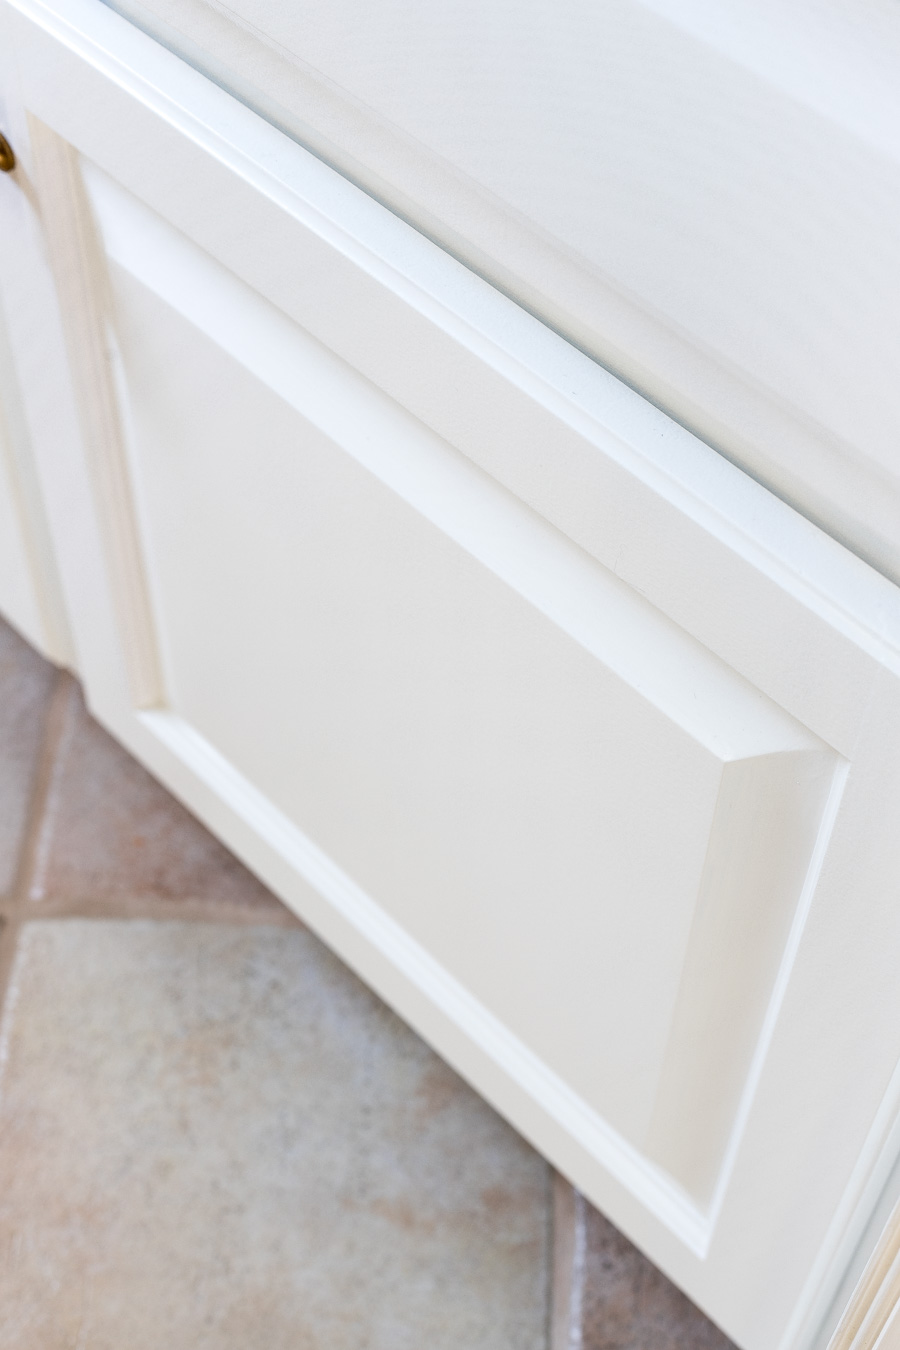 You can get a super smooth finish on painted cabinet doors if you prep and paint the right way!